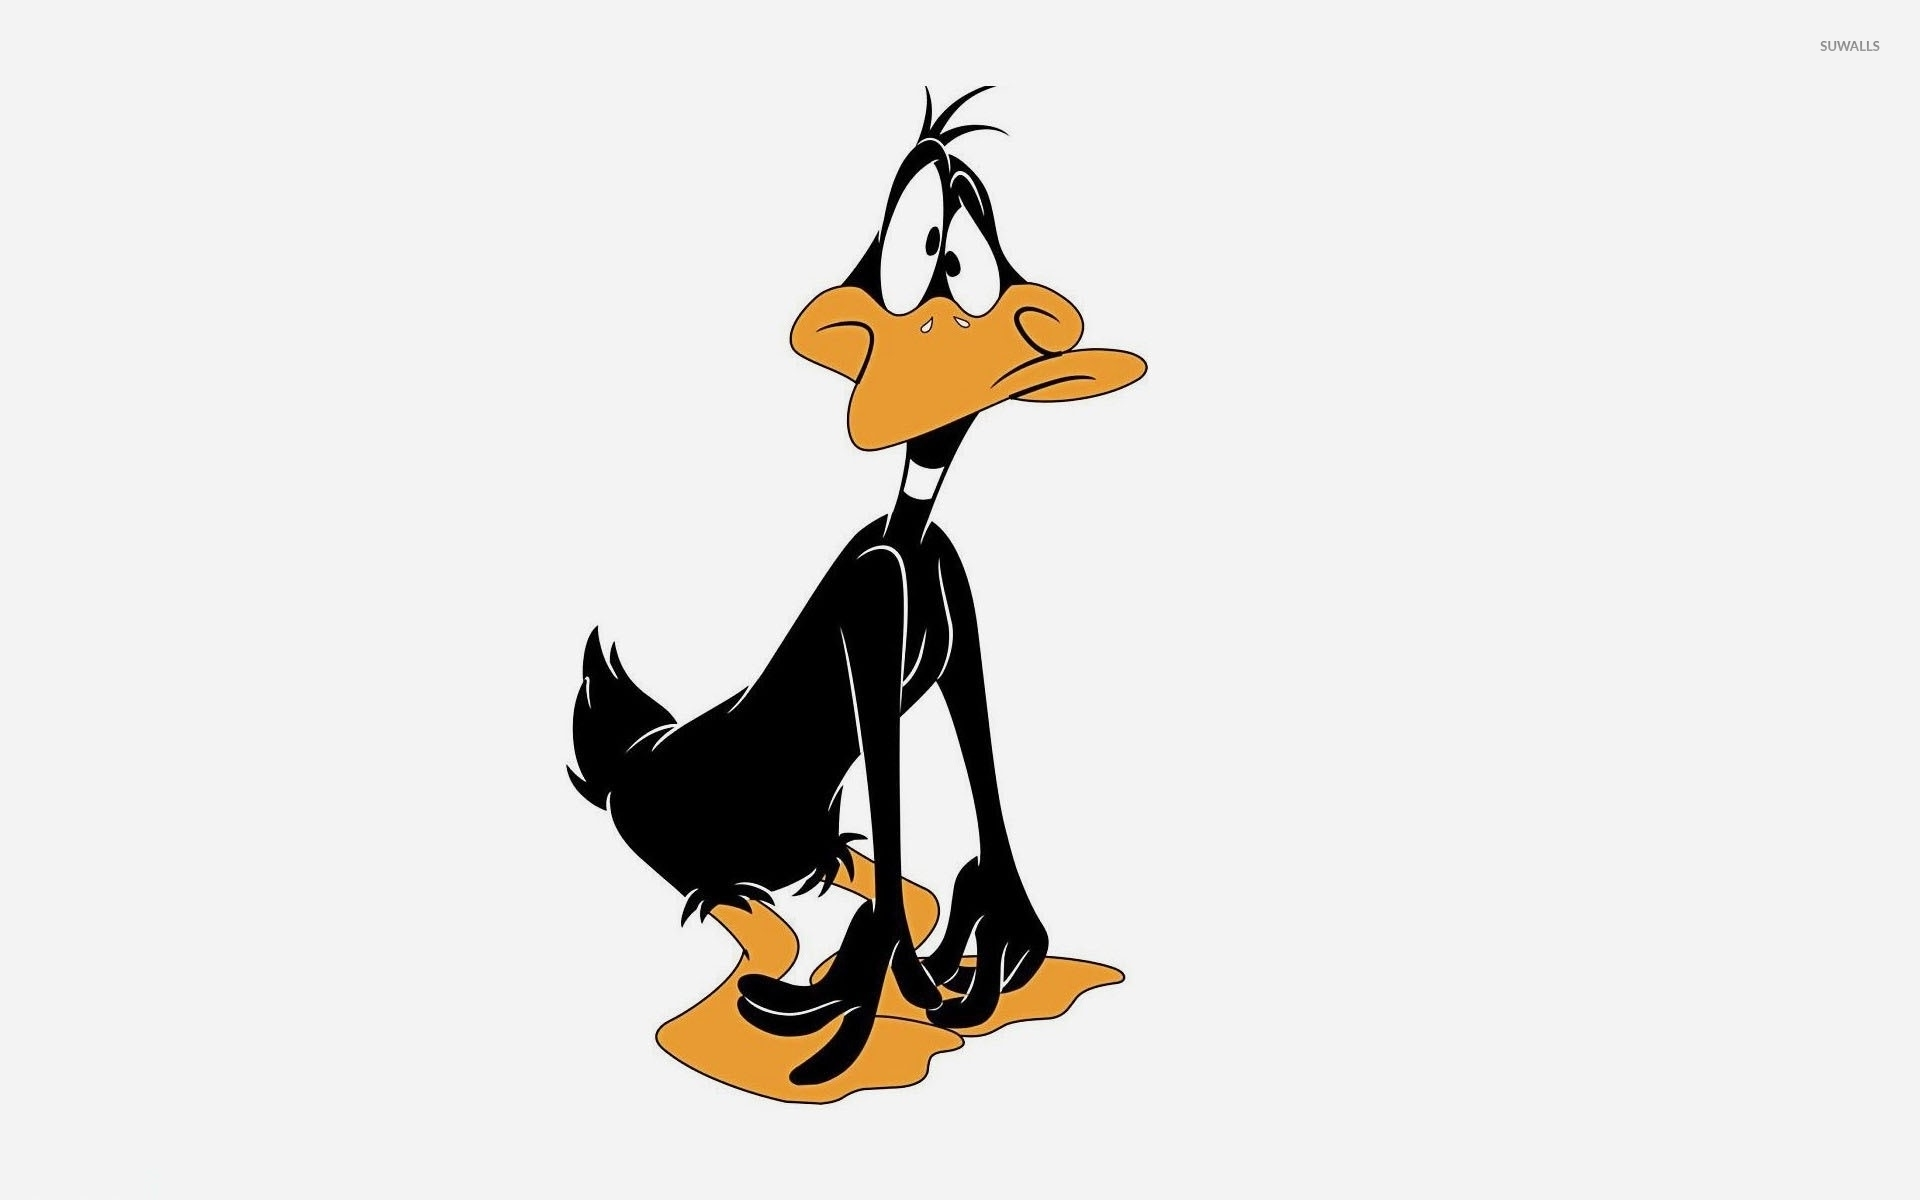 Sad And Surprised Daffy Duck Wallpaper Cartoon Wallpapers 48621